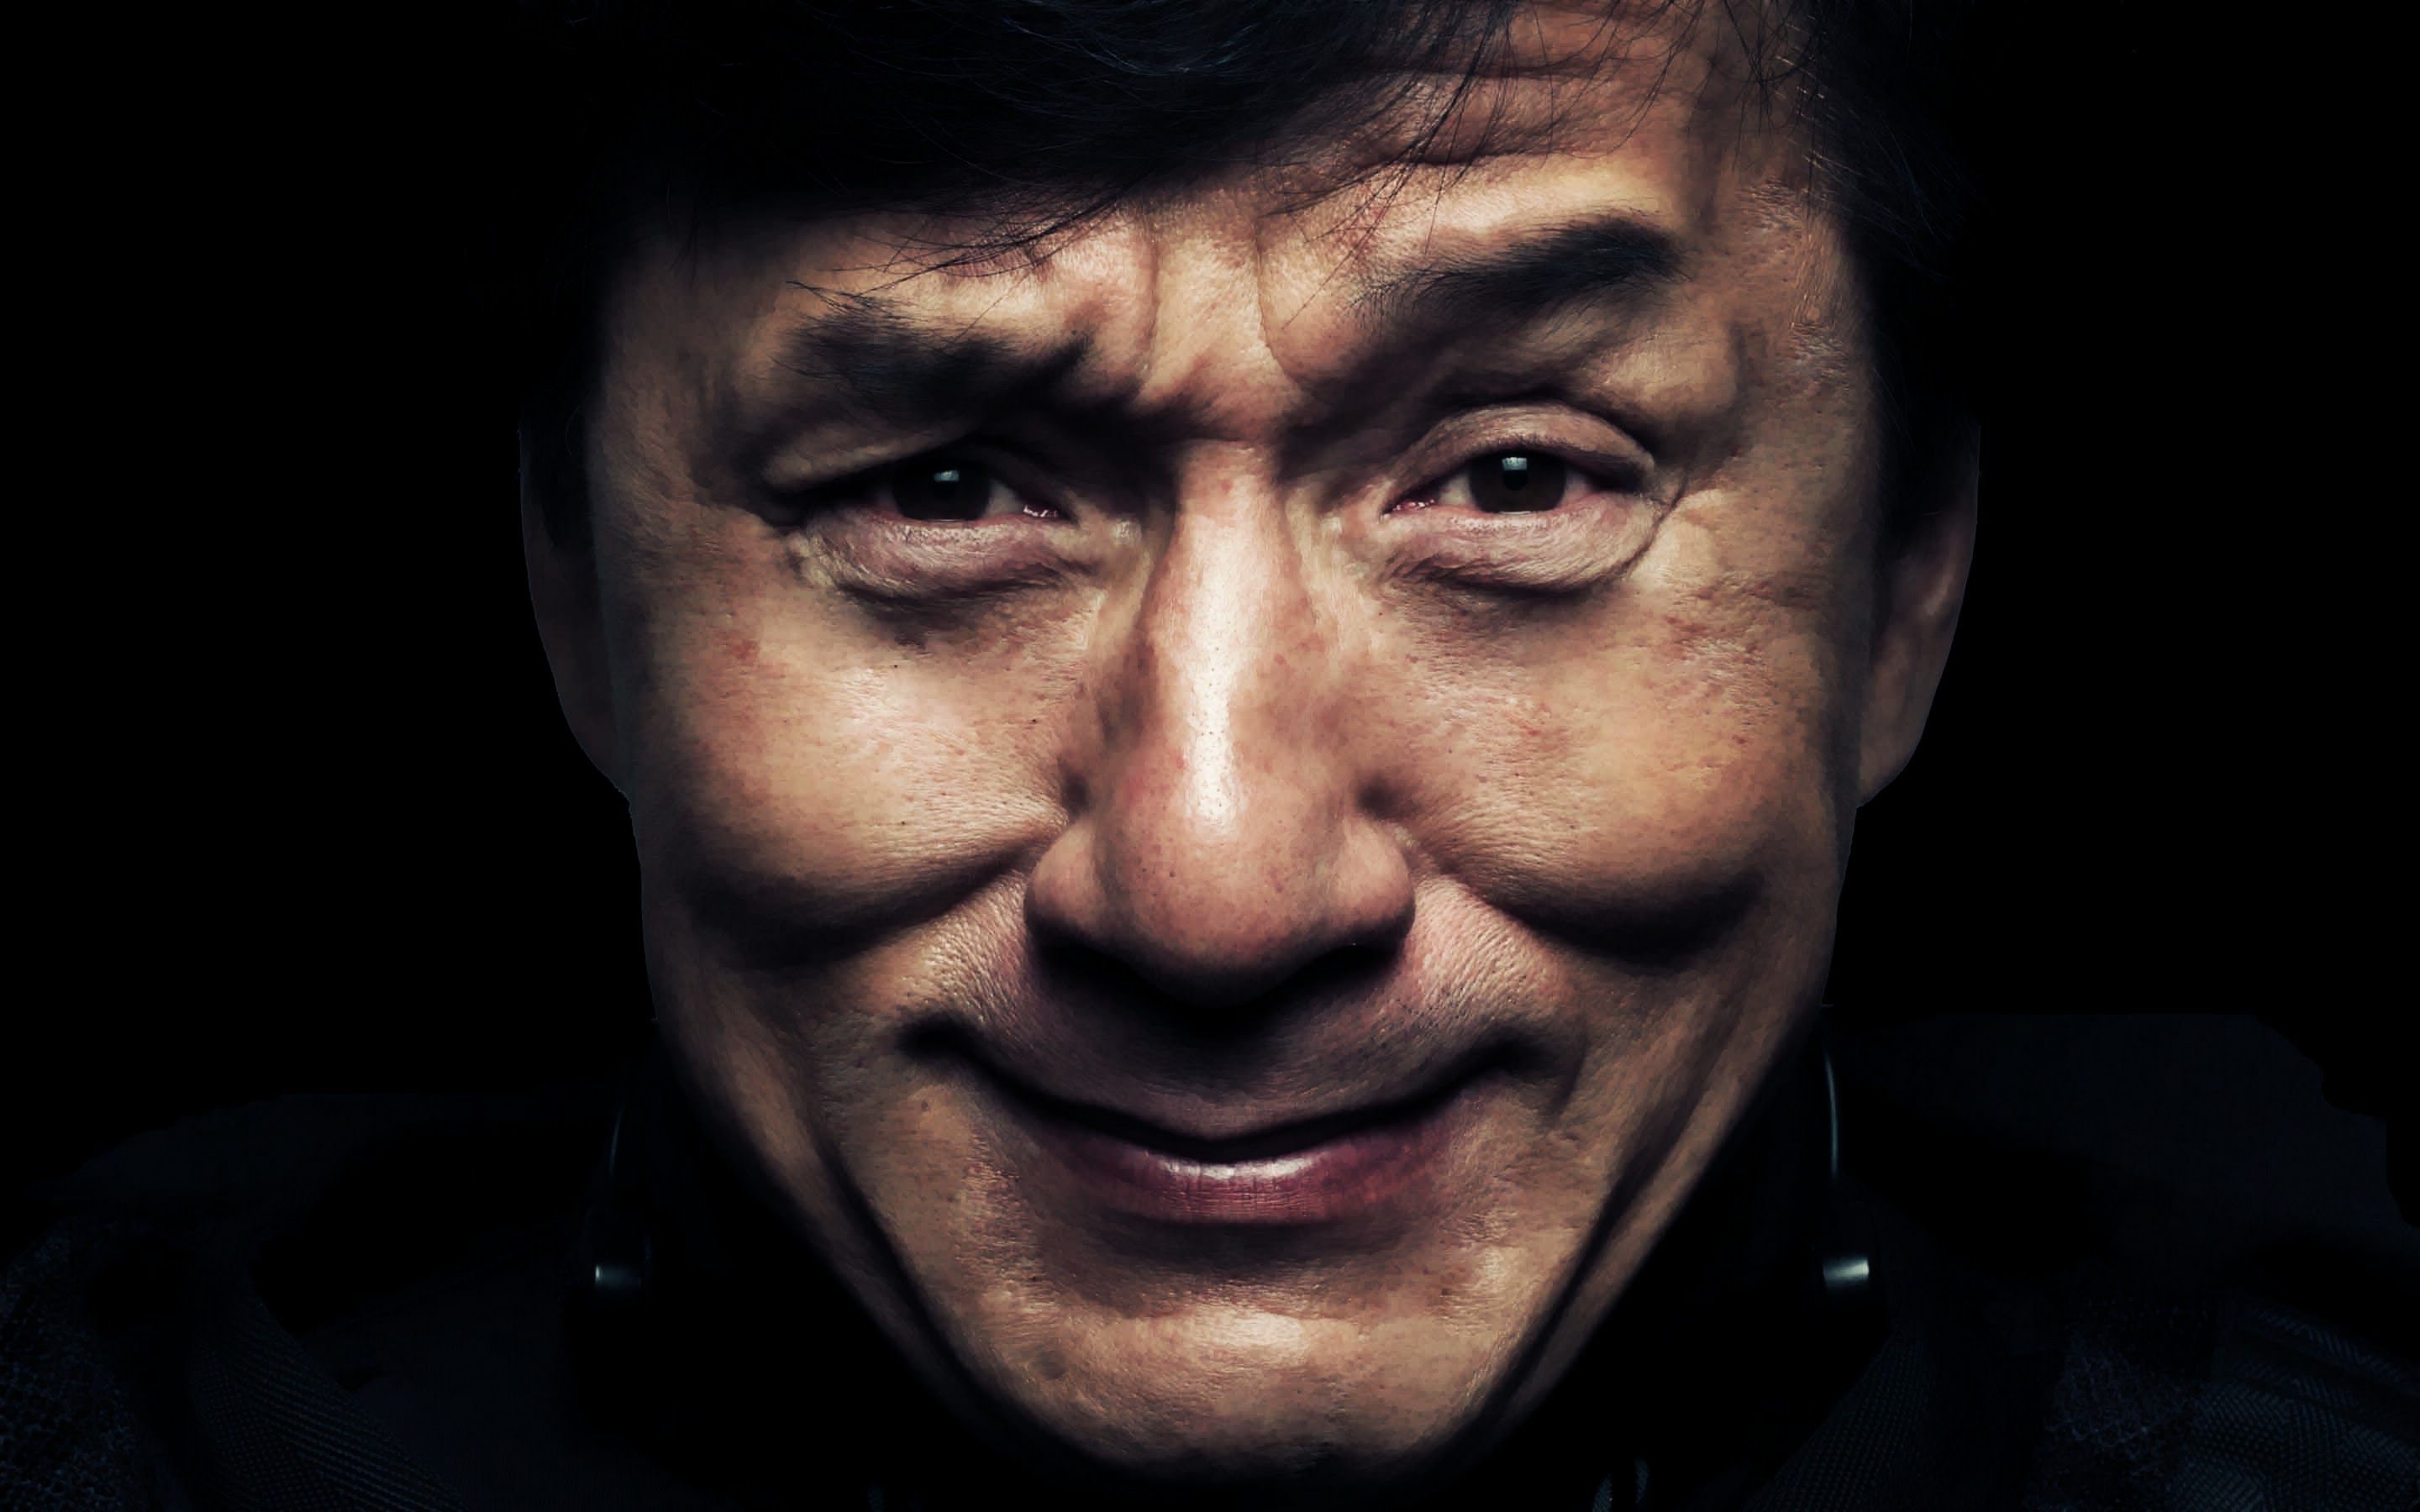 Jackie Chan Chinese Martial Artist, Actor, Director, Producer, Singer